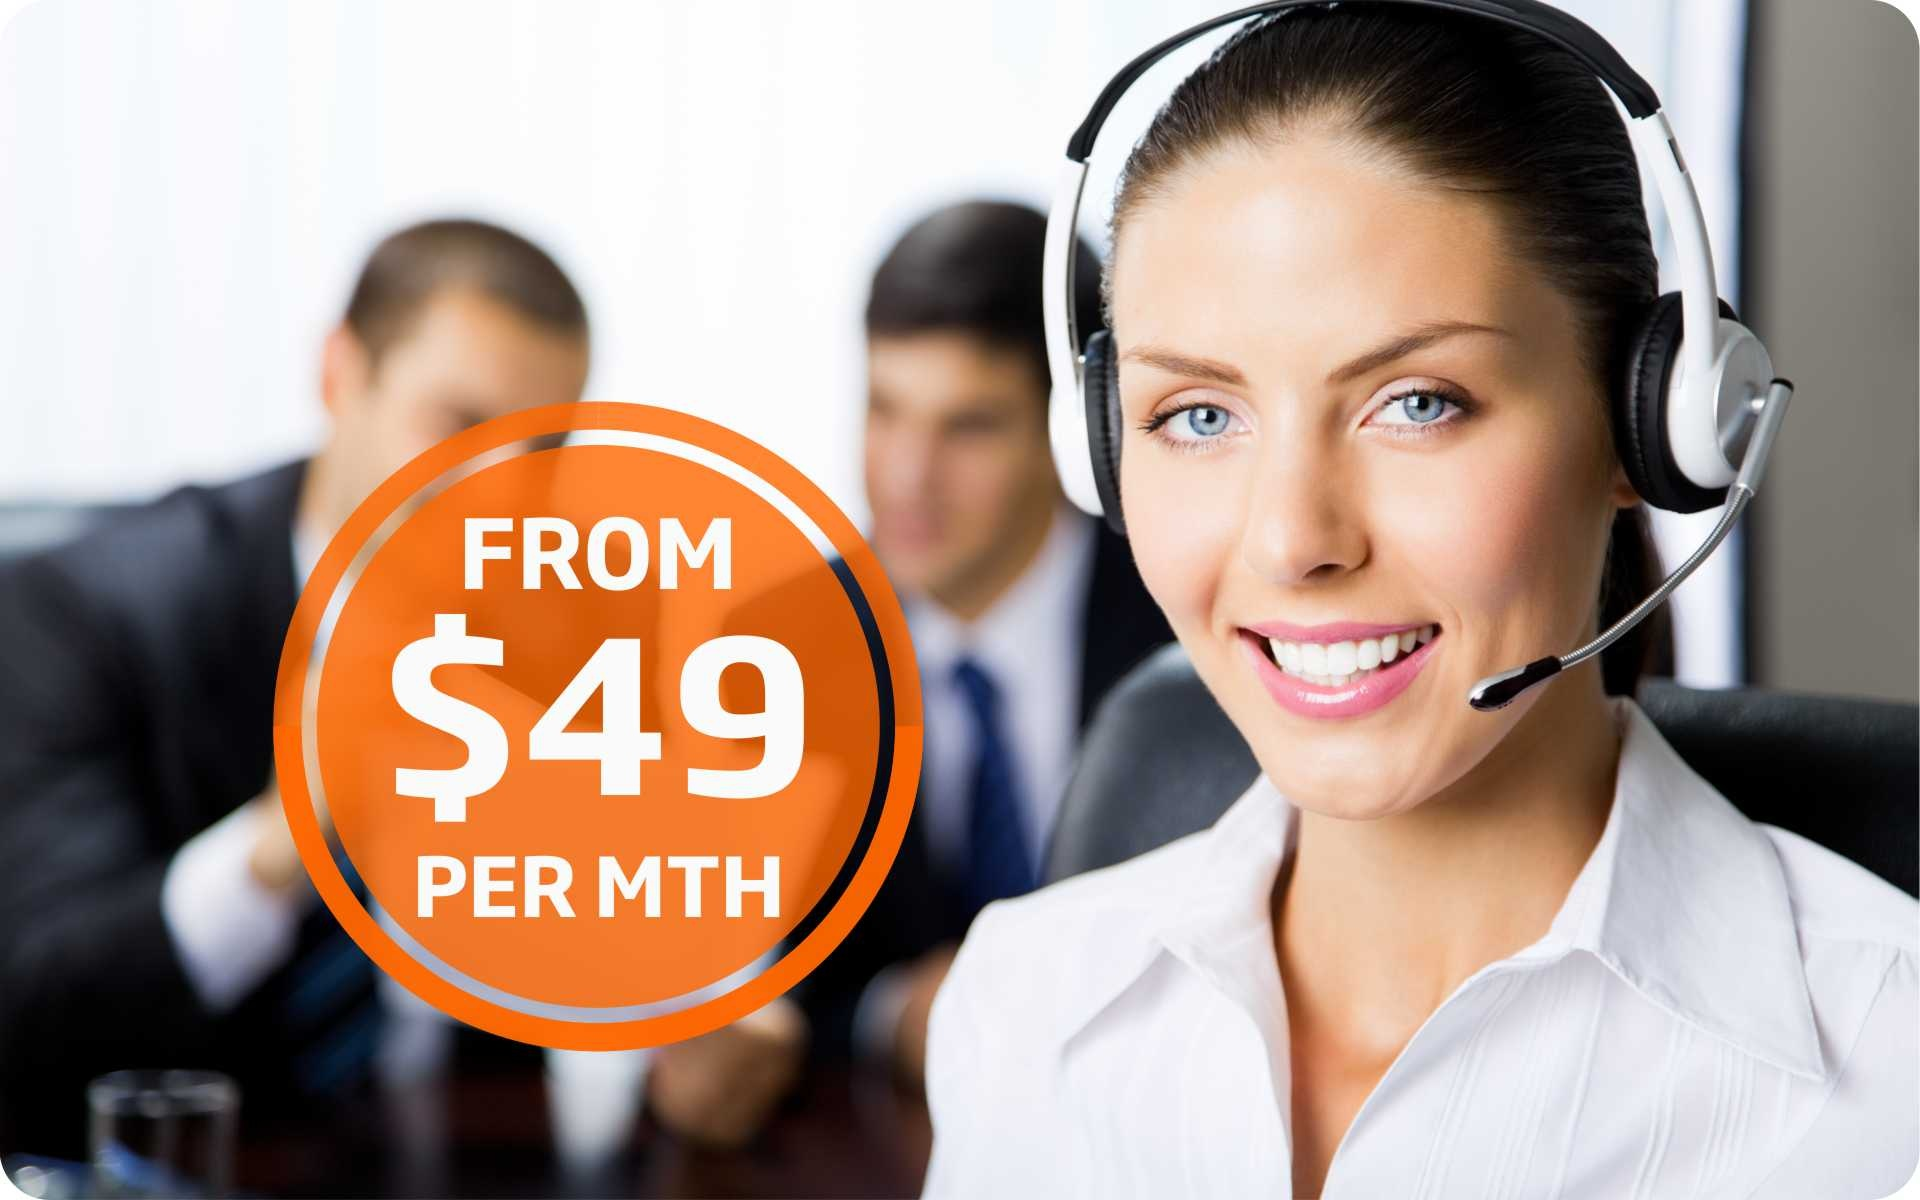 24/7 Live Telephone Answering Services | Based in Australia